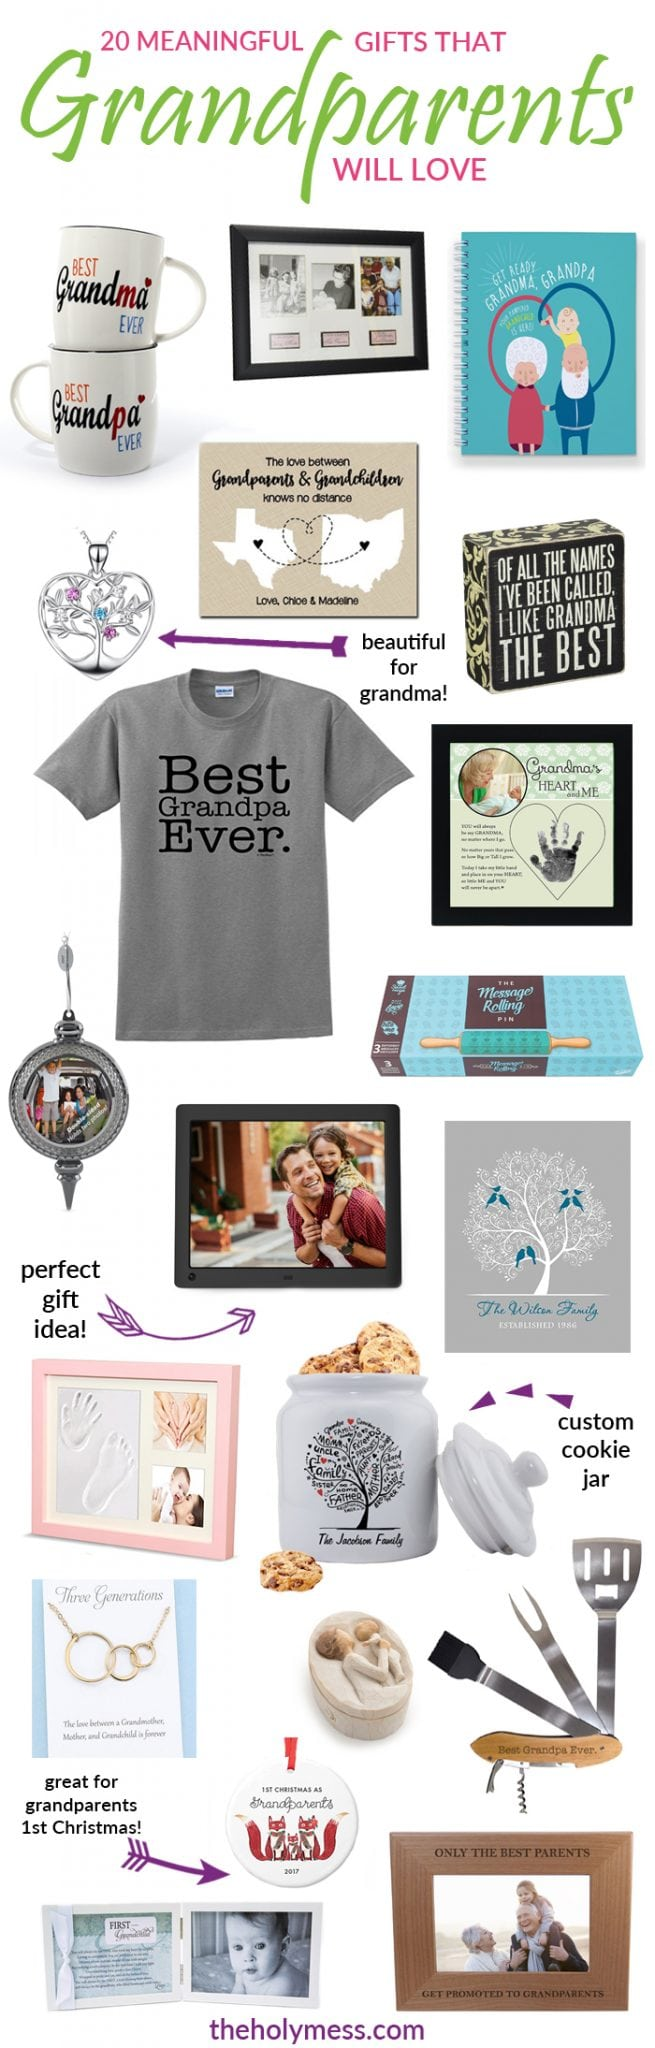 20 Meaningful Gifts That Grandparents Will Love